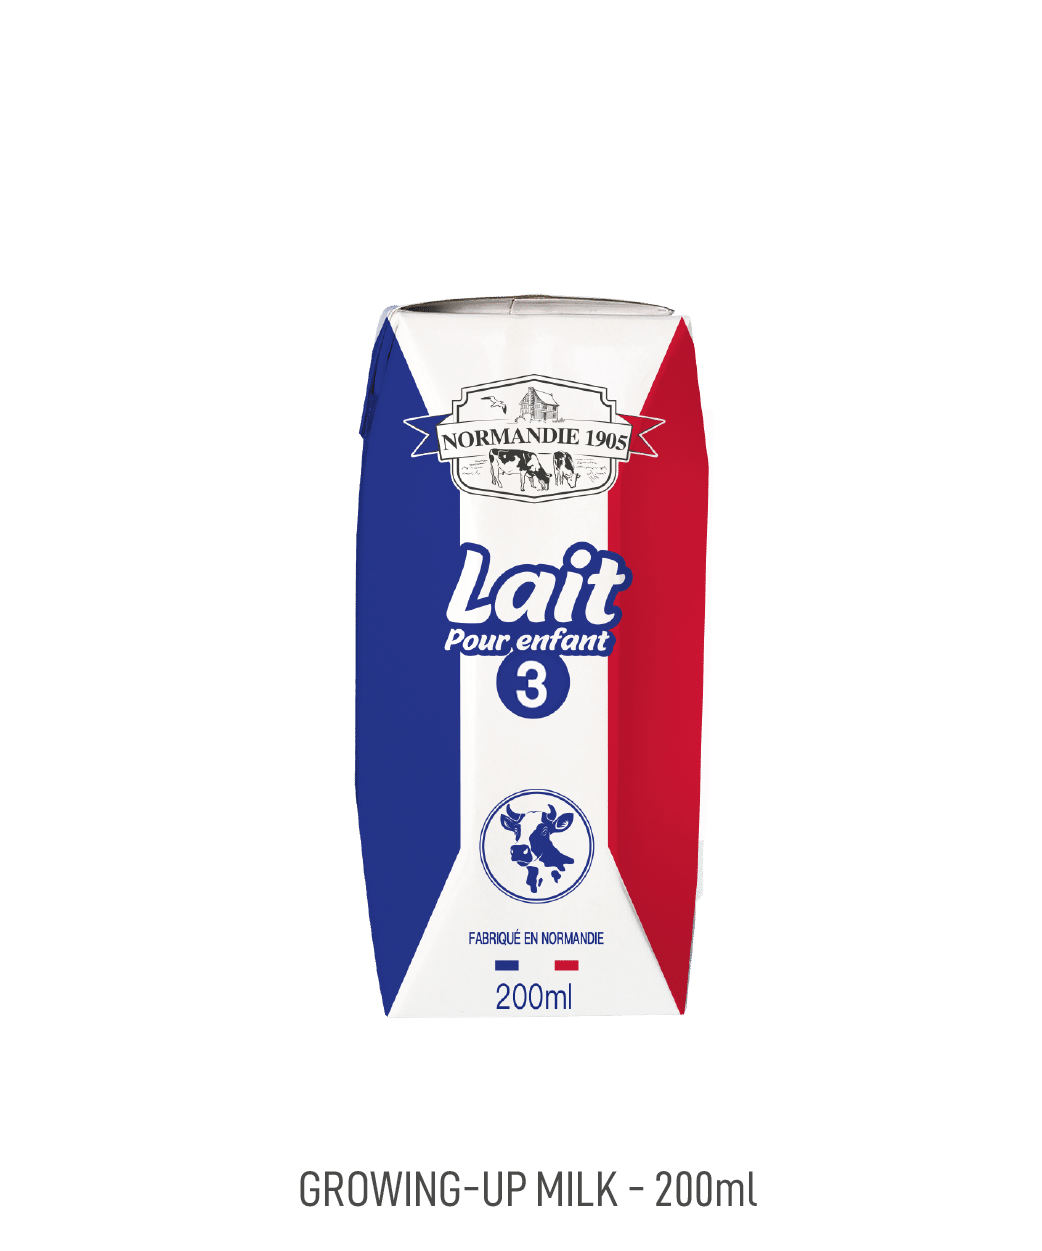 Lait infantile step 3 Normandie 1905 200ml